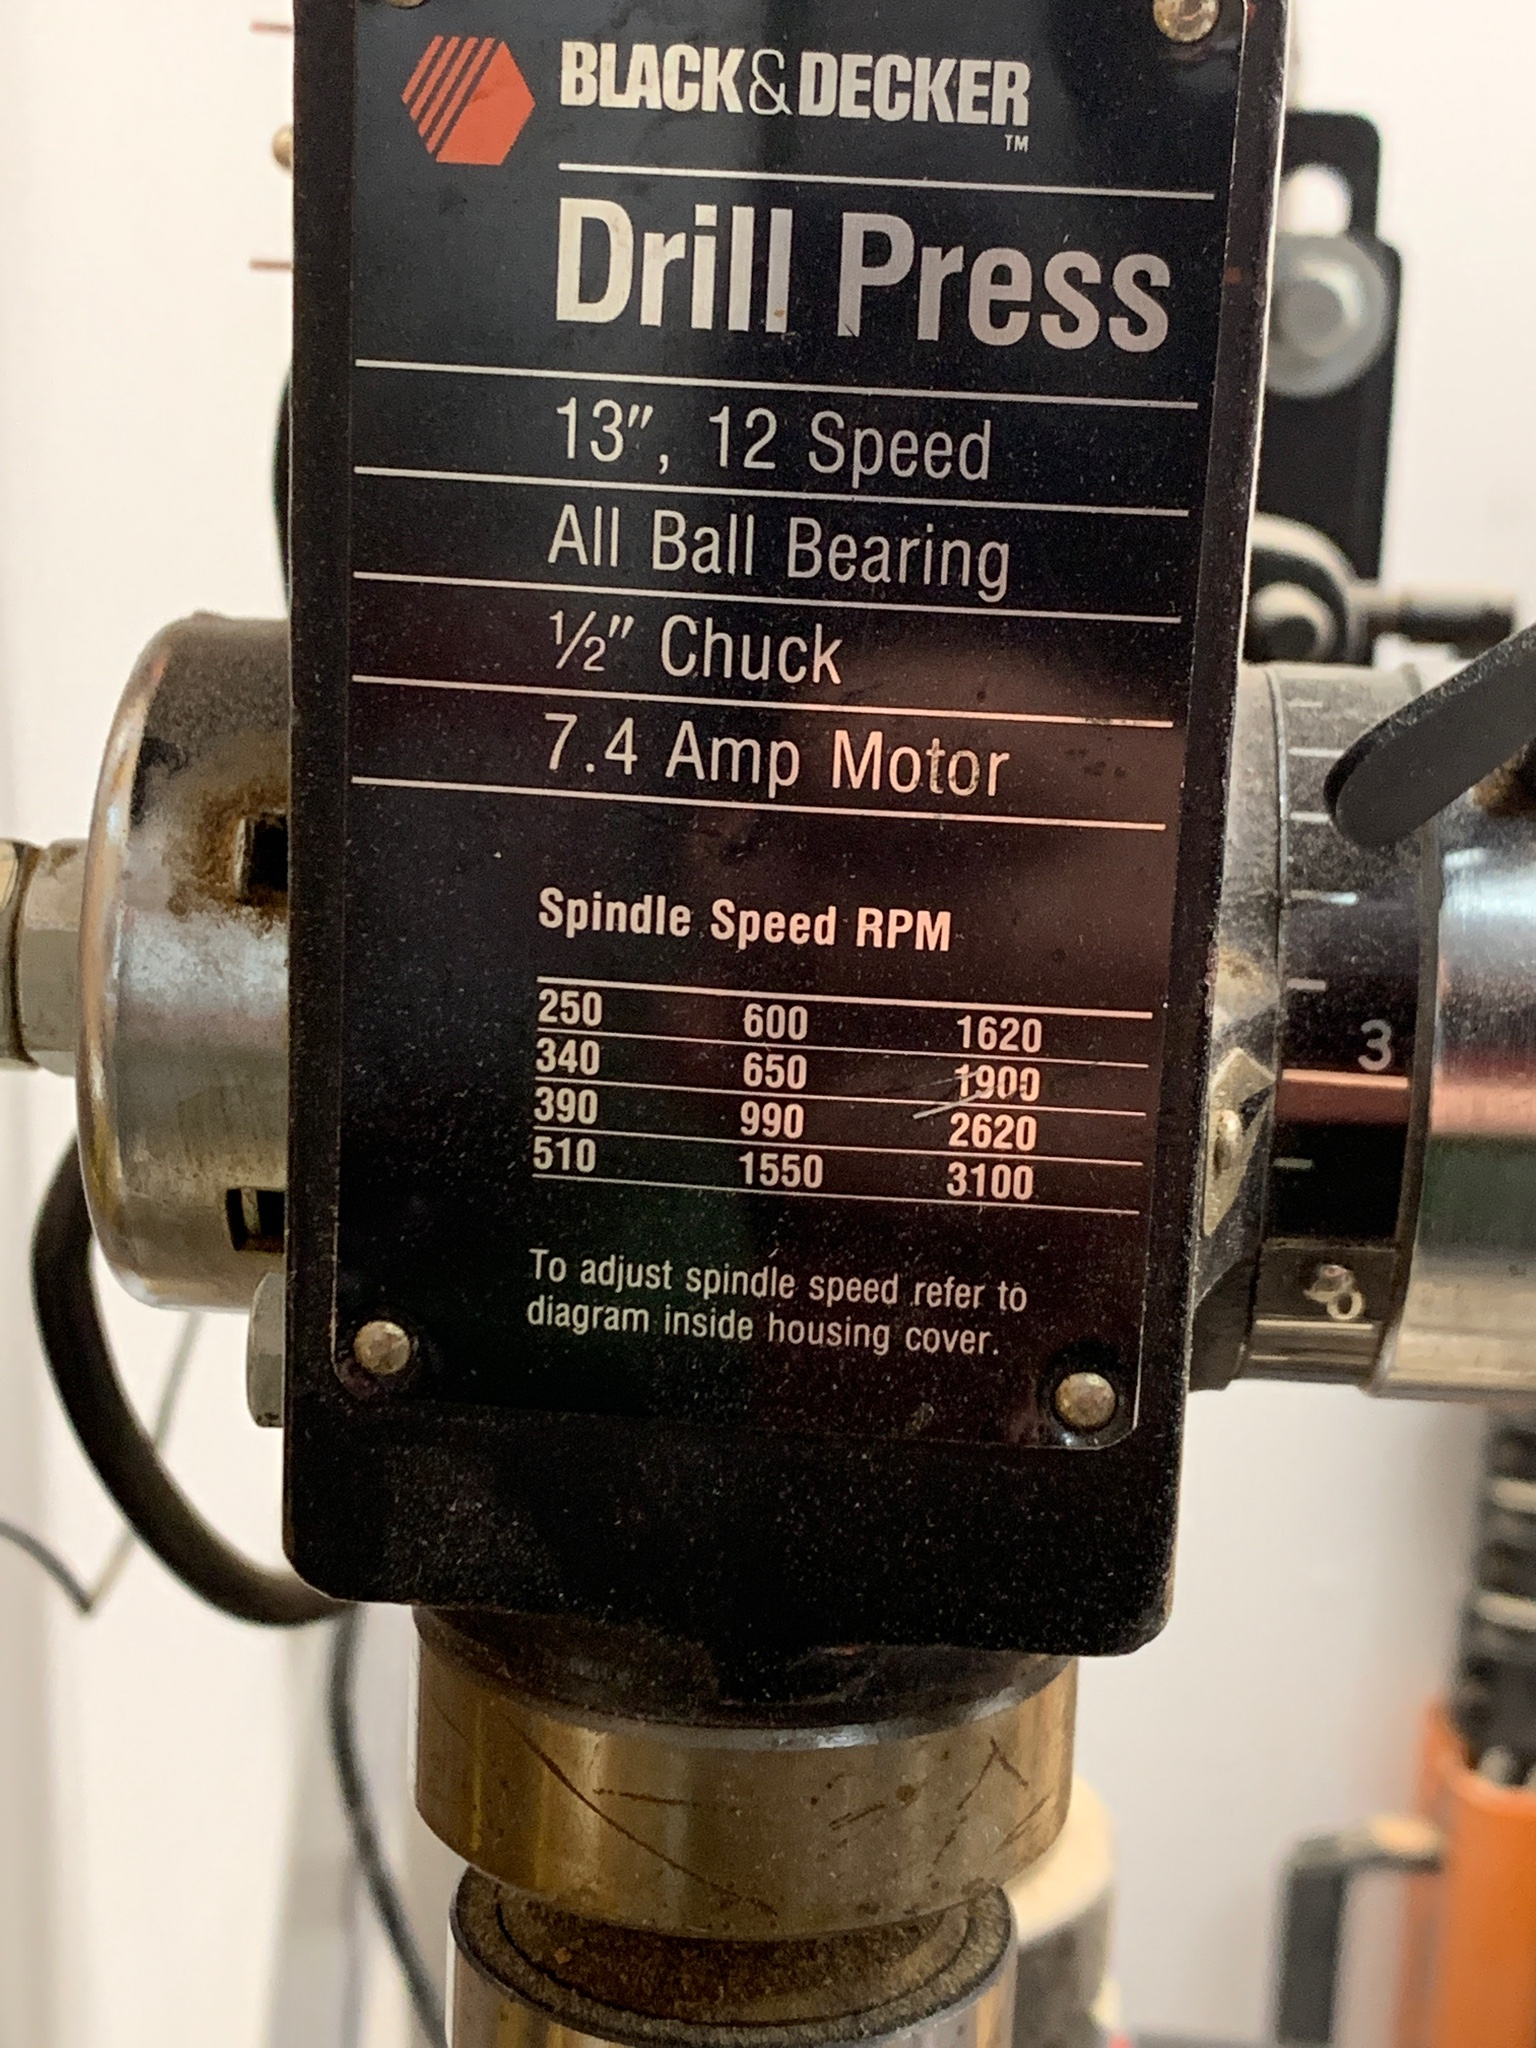 hight resolution of need help replacing the chuck on an old drill press